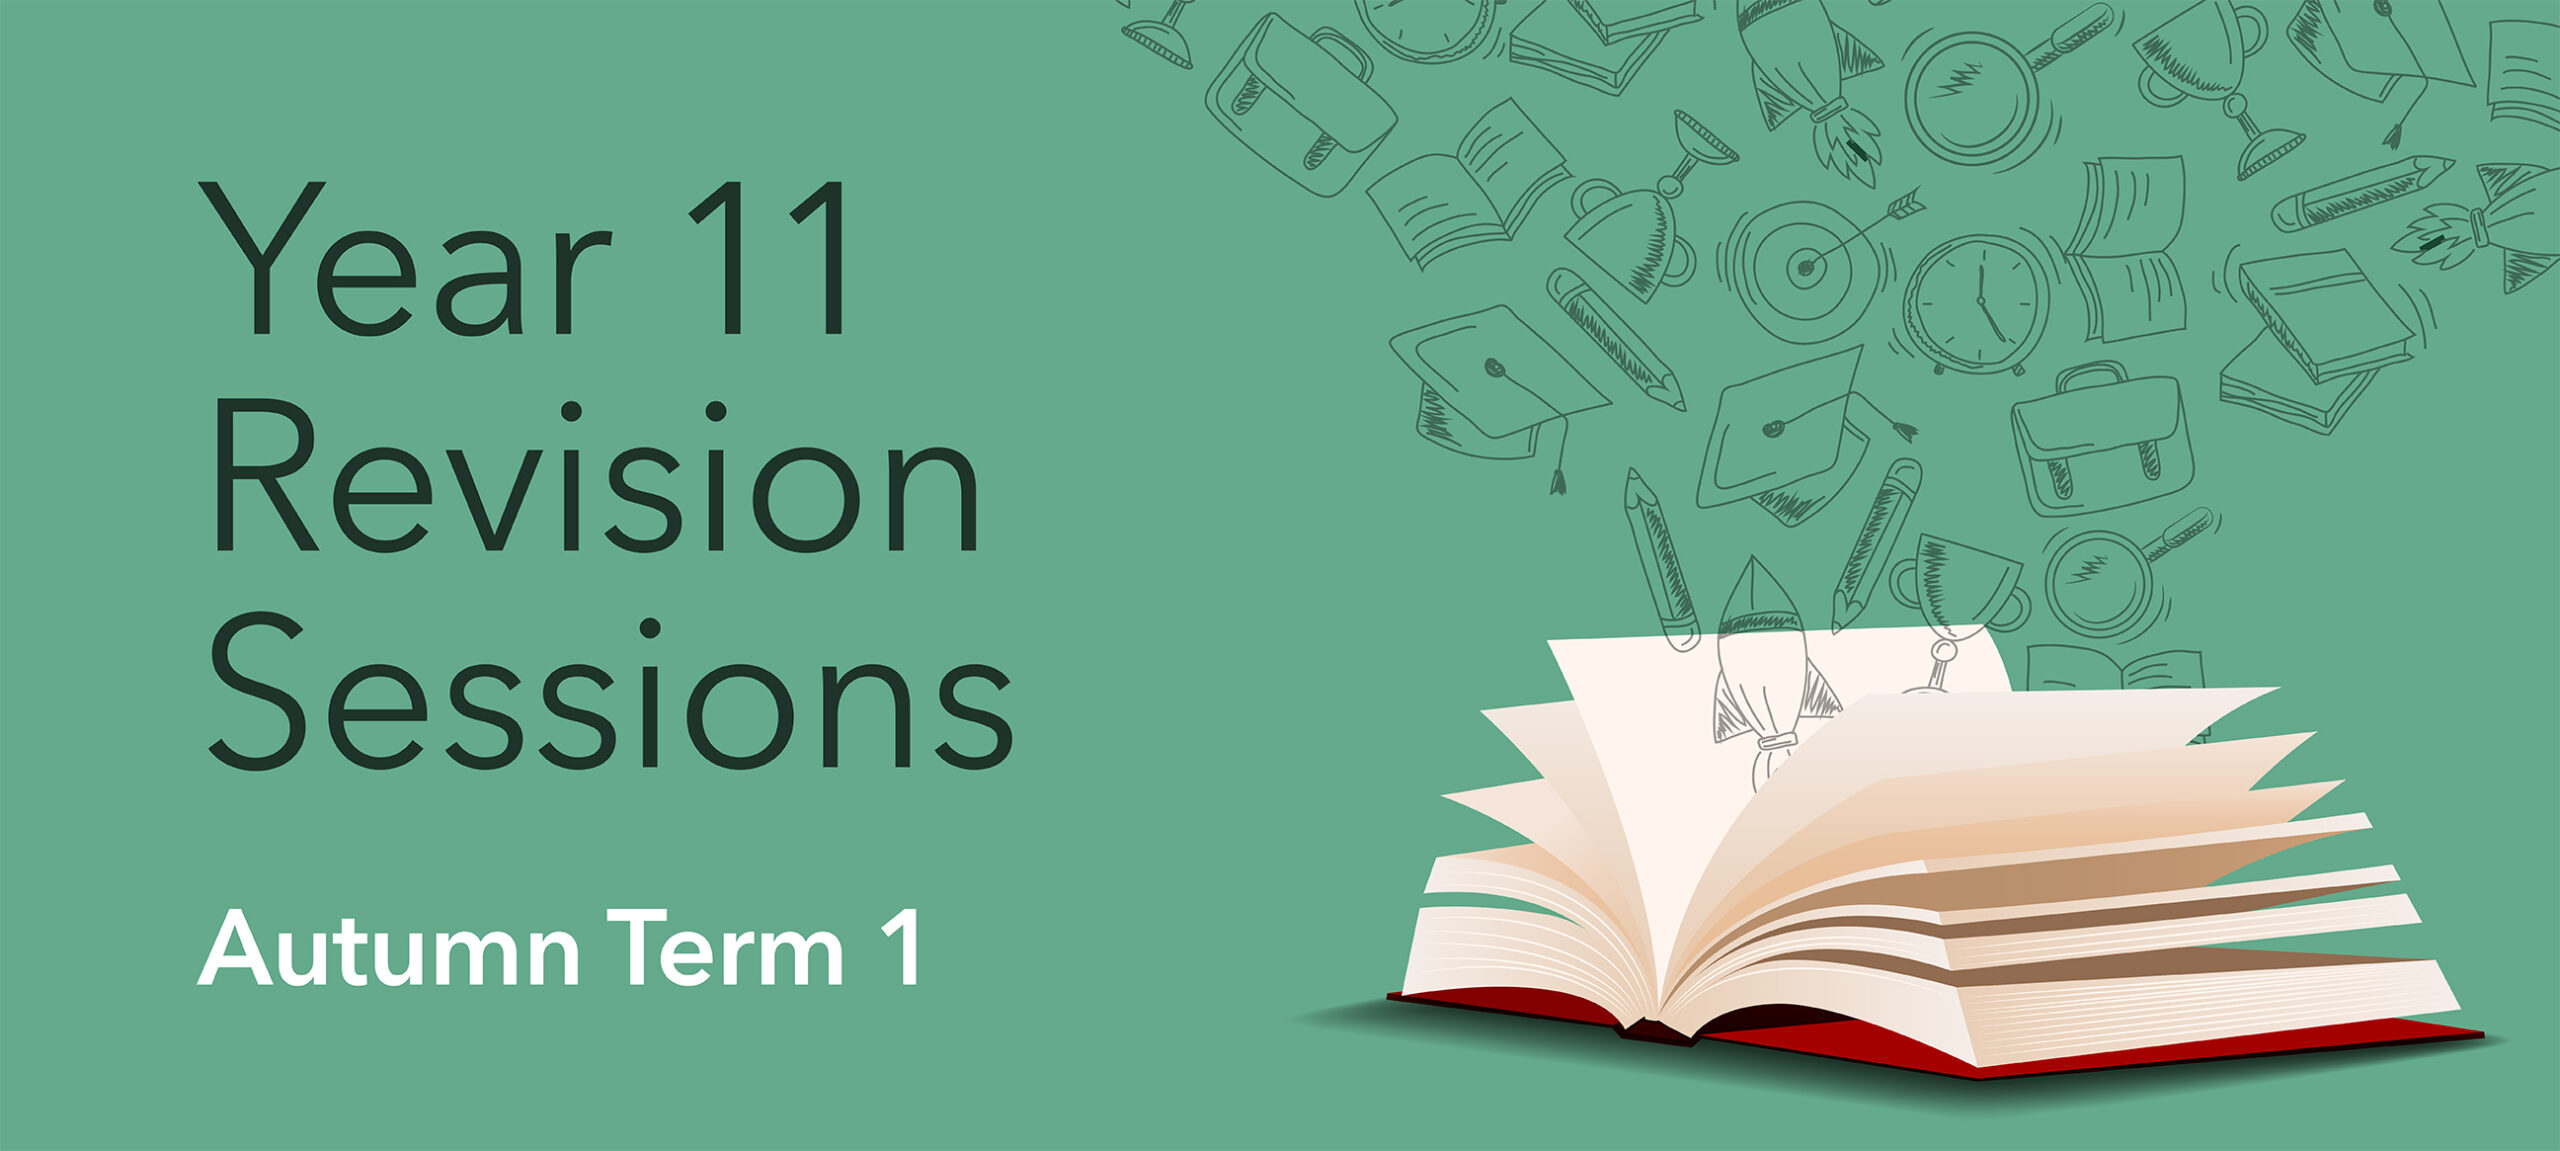 Year 11 After School Revision Sessions